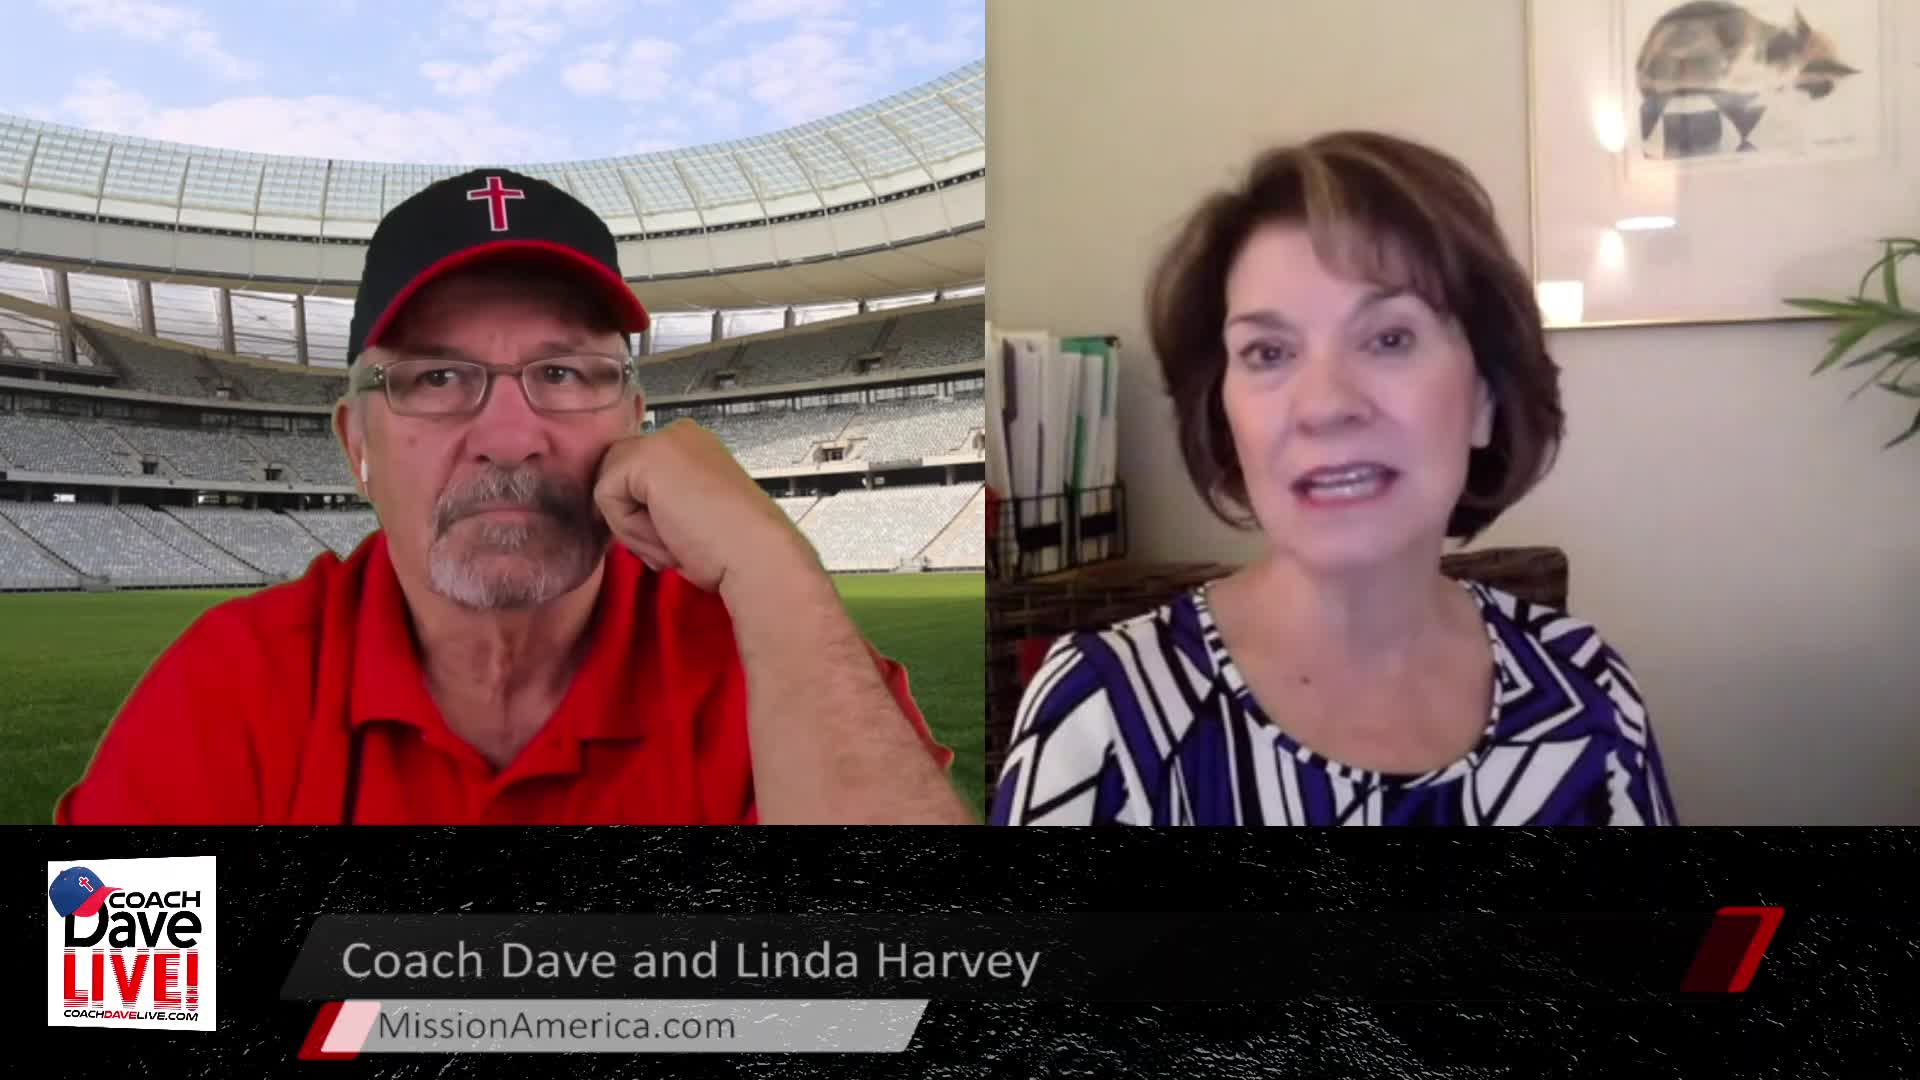 Coach Dave LIVE | 4-7-2021 | SPECIAL GUEST LINDA HARVEY OF MISSION AMERICA - AUDIO ONLY